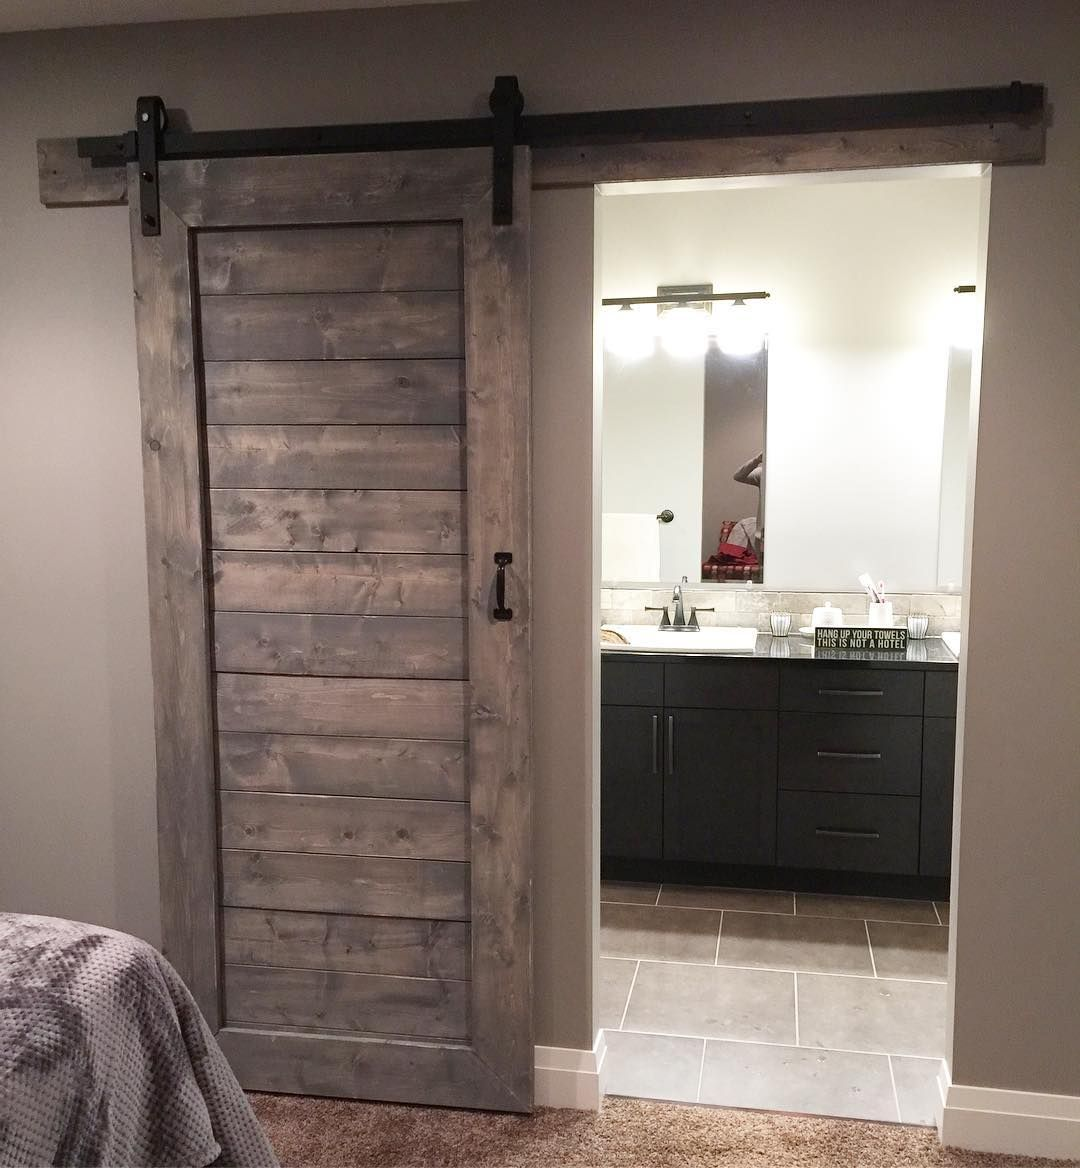 rustic barn door sliding barn door diy barn door barn door ideas rustic decor rustic. Black Bedroom Furniture Sets. Home Design Ideas